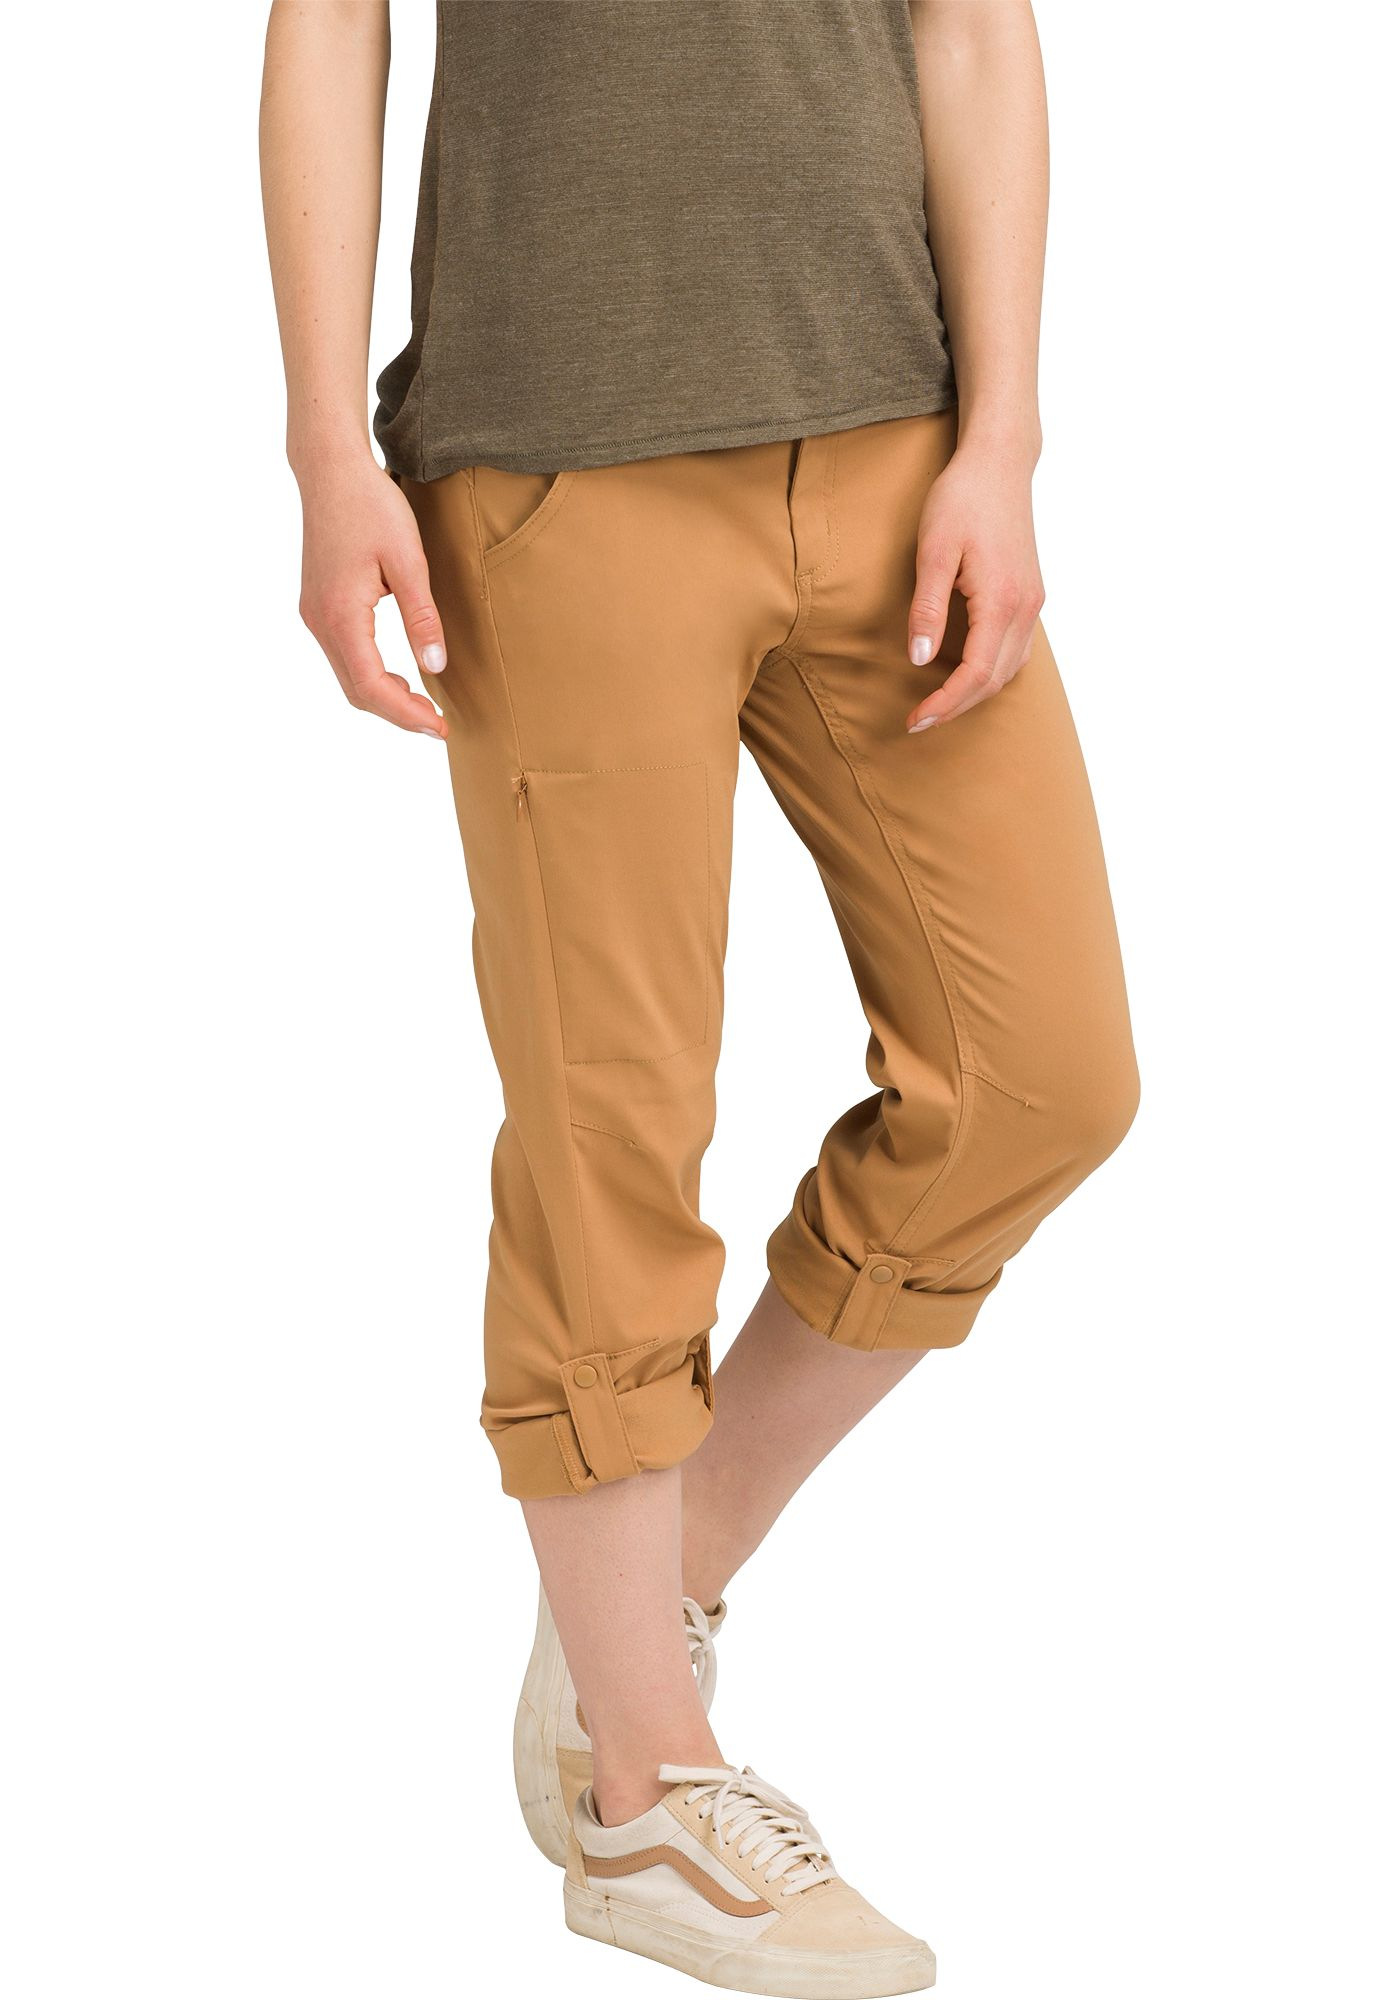 prAna Women's Halle Pants